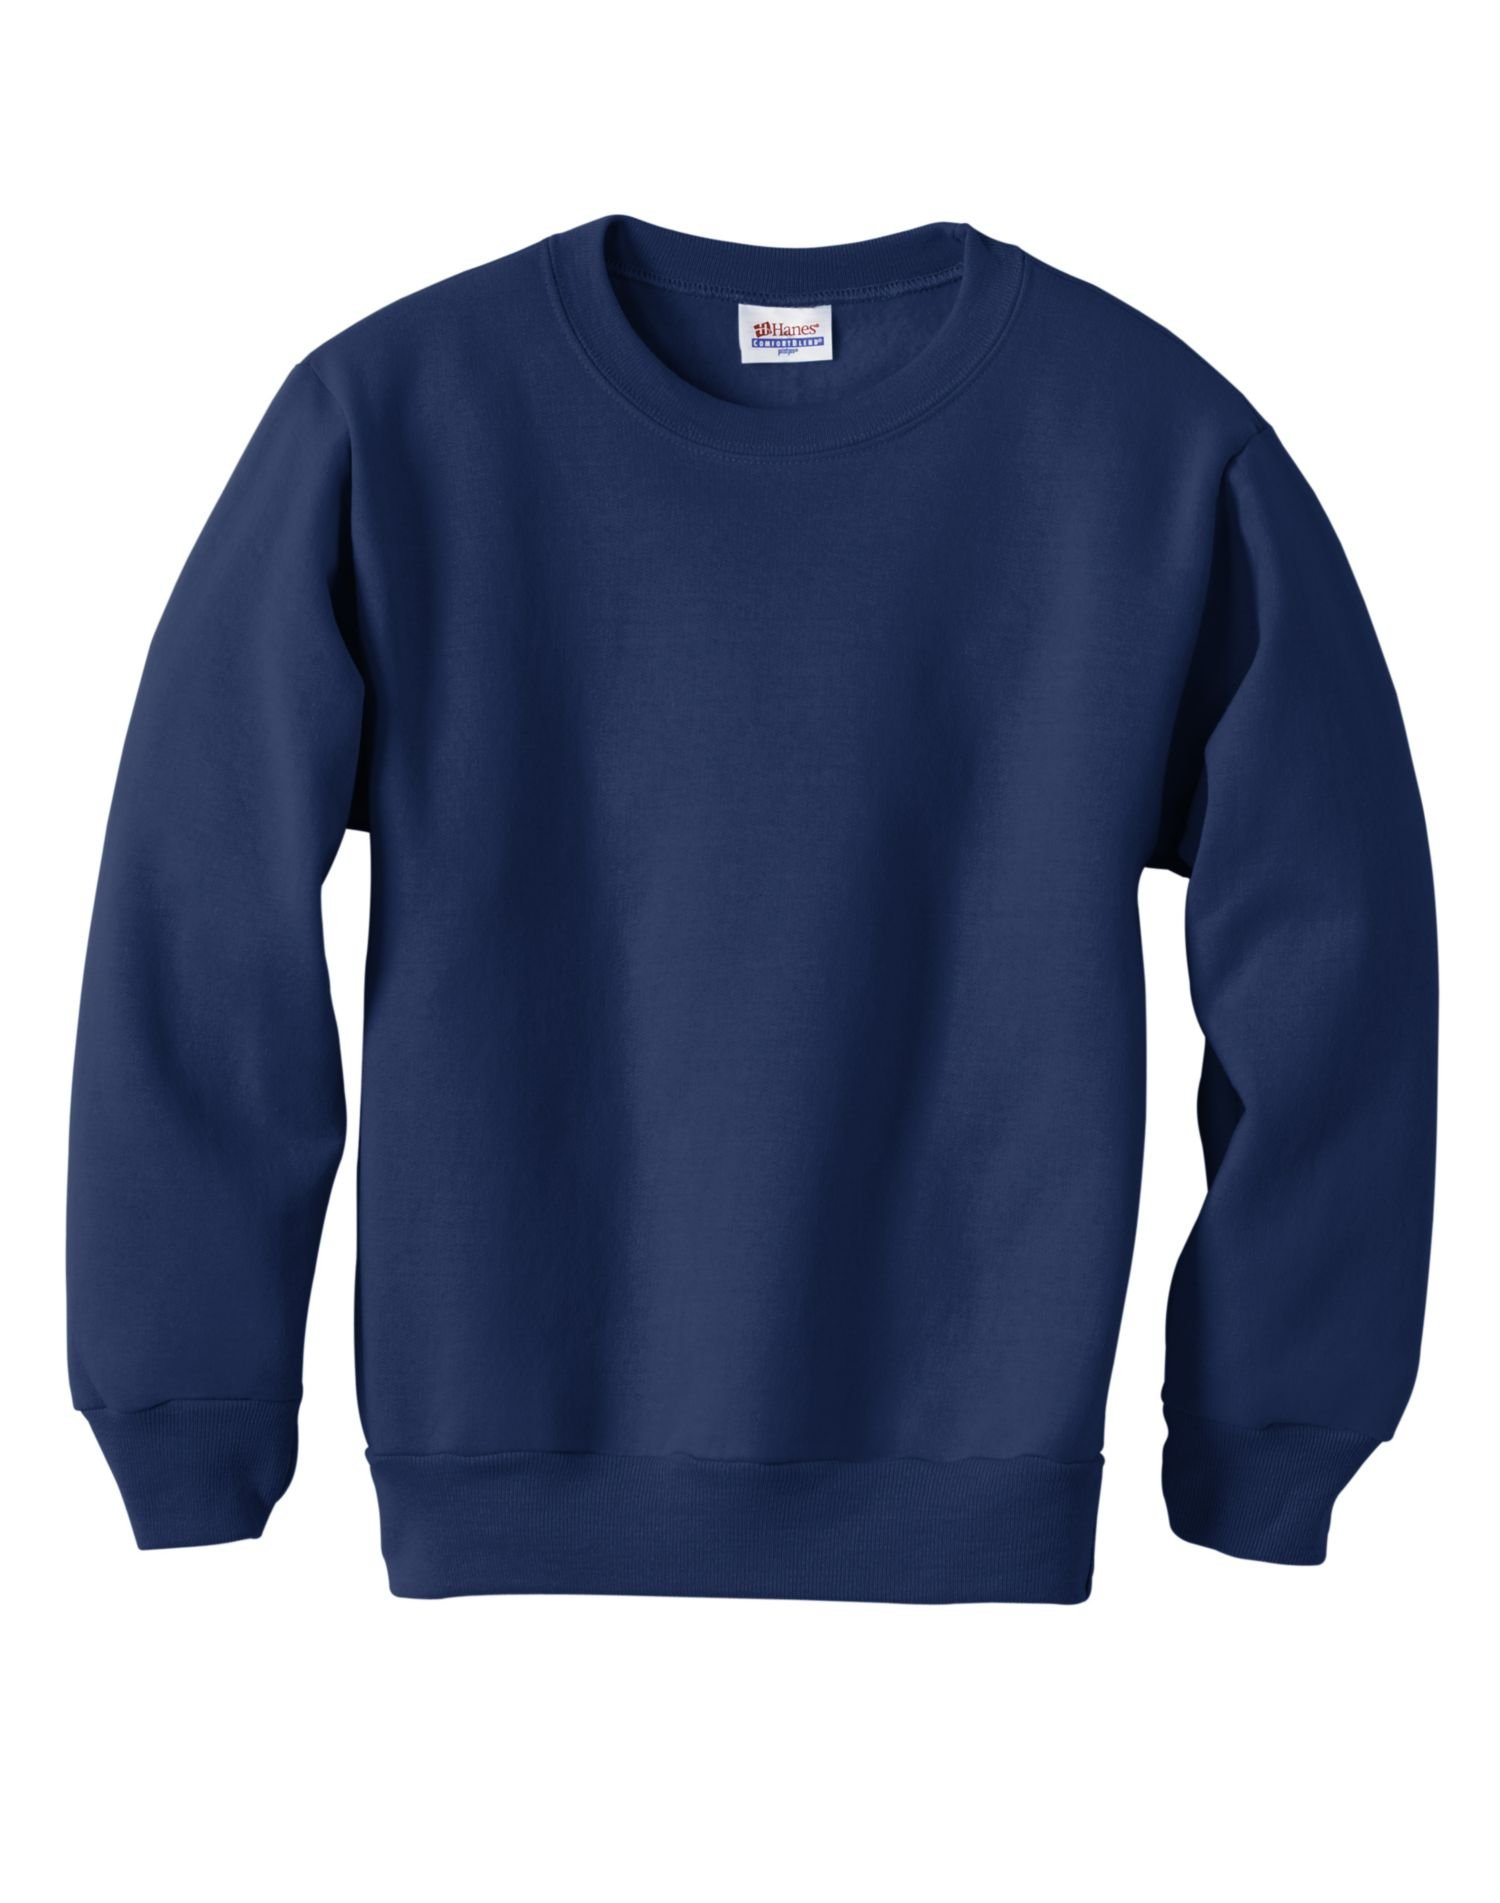 Hanes Youth-Pile a maniche lunghe girocollo ComfortBlend-p360